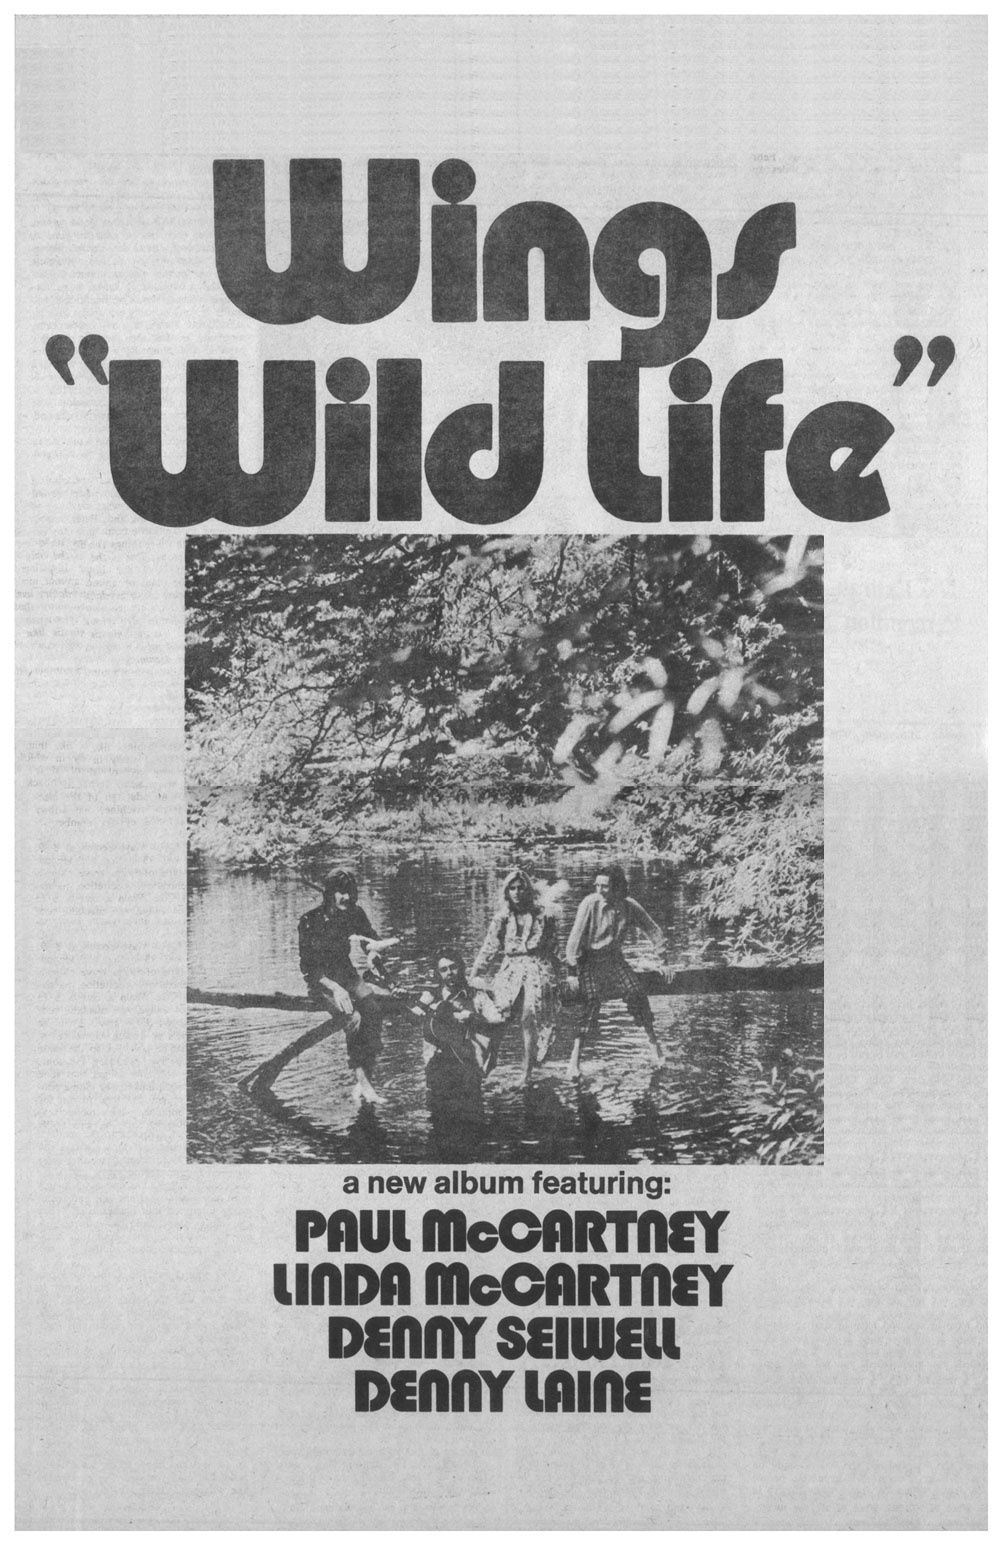 """PAUL MCCARTNEY AND WINGS' """"Wild Life"""" and """"Red Rose Speedway"""